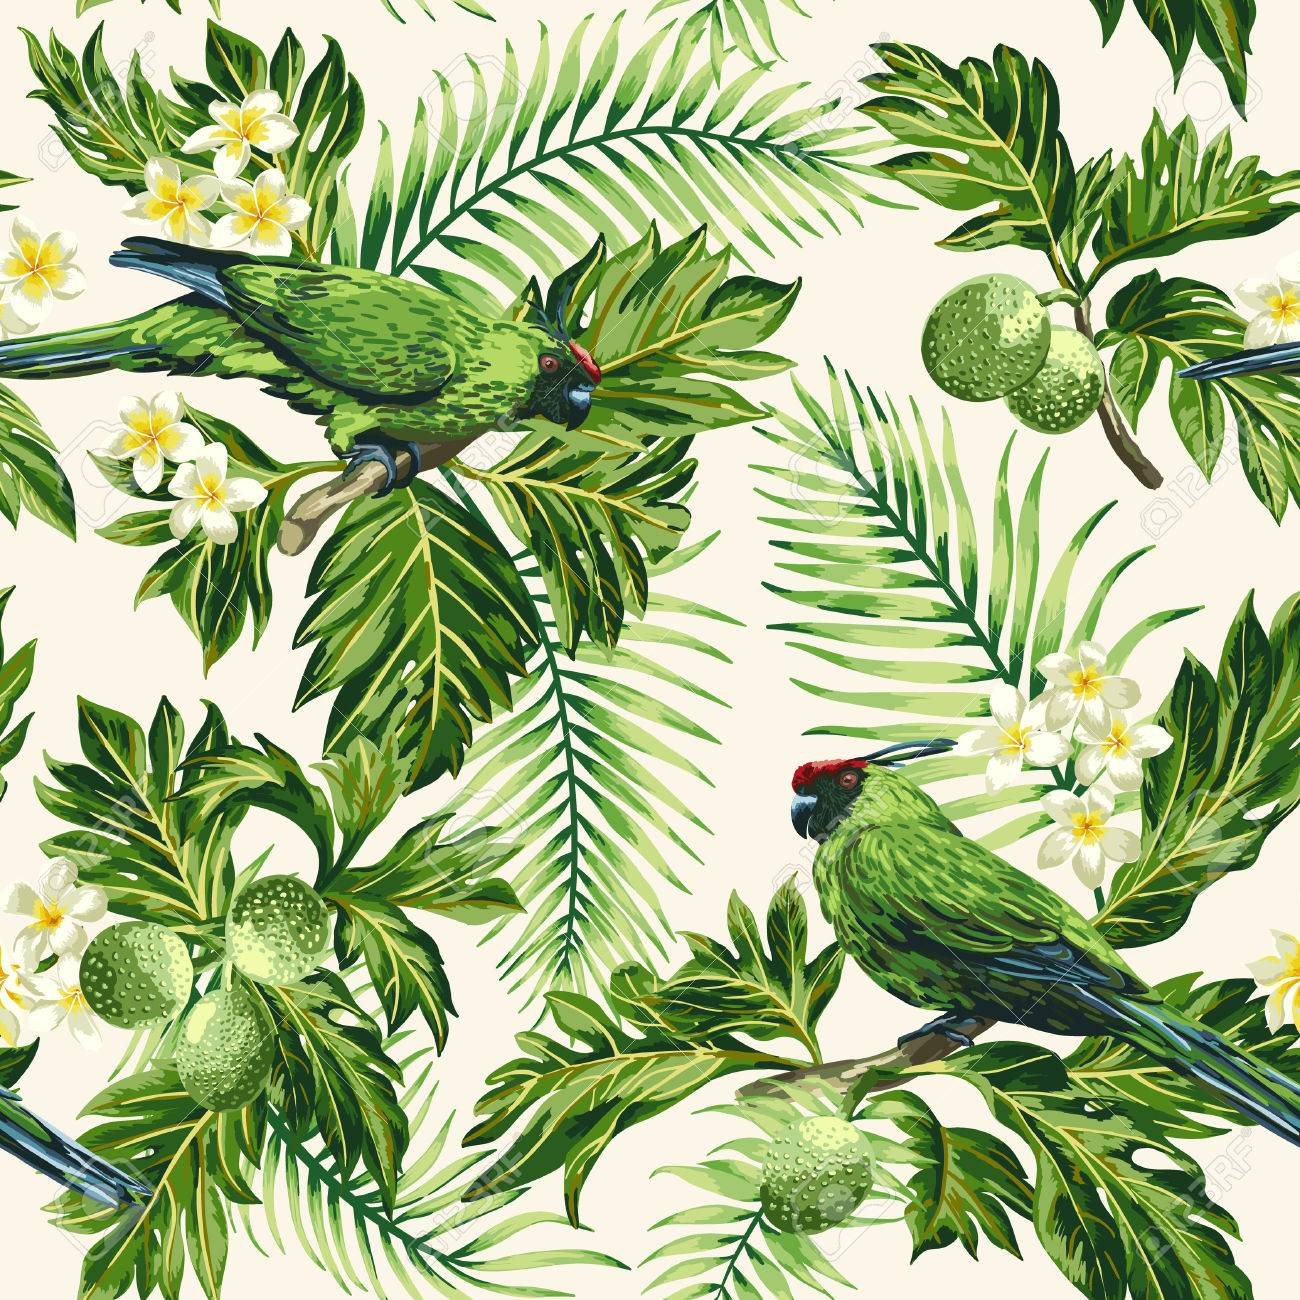 Seamless exotic tropical pattern with leaves, fruits, flowers and birds. Breadfruit, palm, plumeria, parrots. Vector illustration. - 56800085